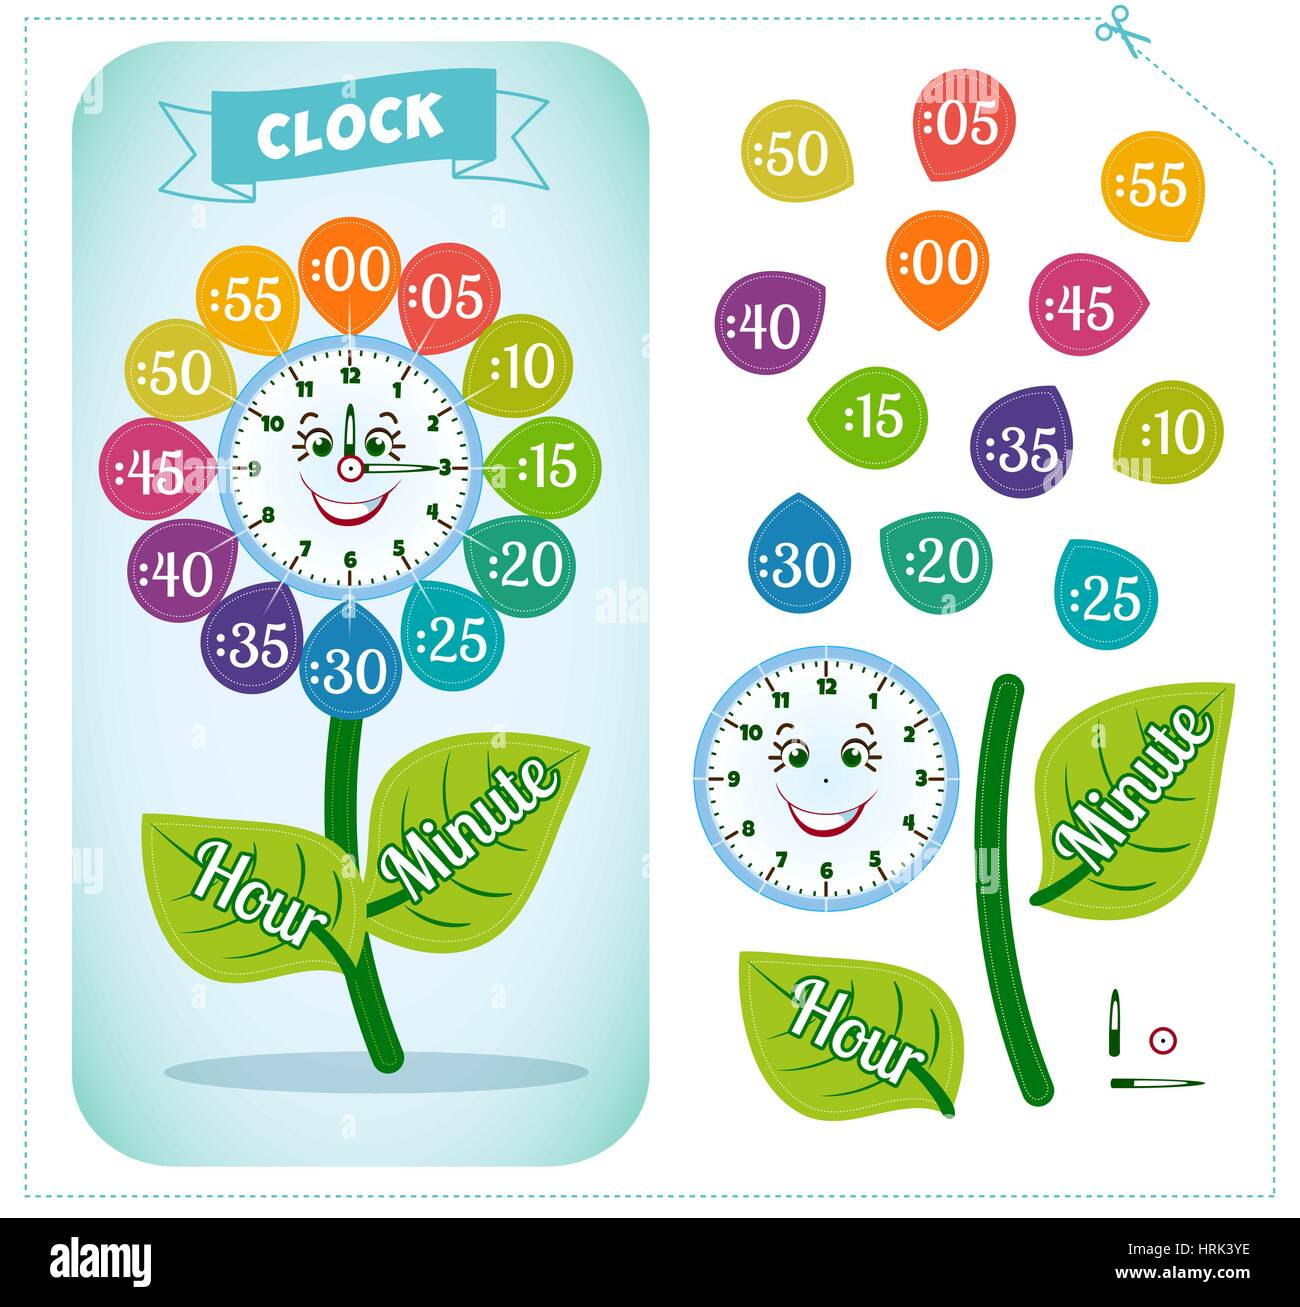 Tell G Time W Ksheet School Kids To Ident Y Time Clock